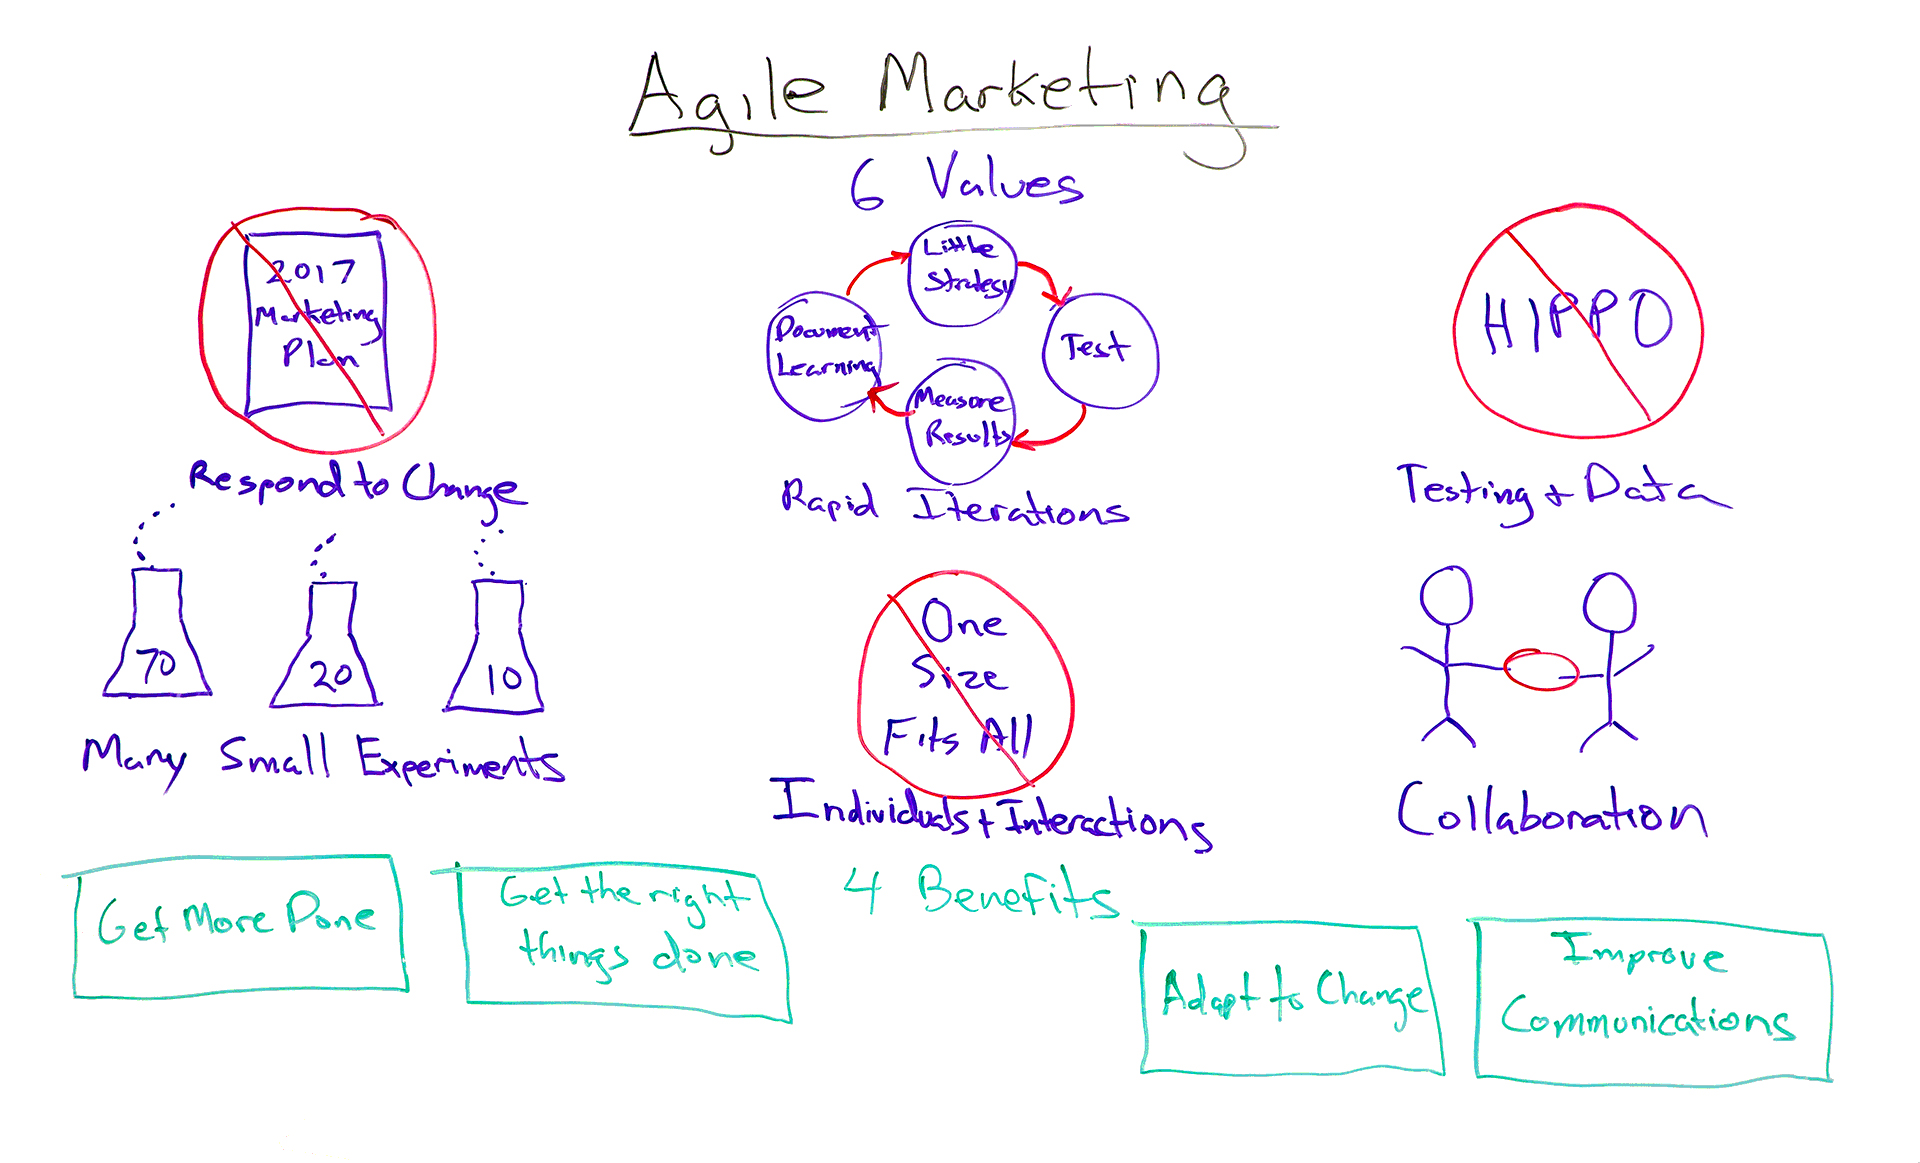 https://moz.com/blog/6-values-agile-marketing-whiteboard-friday